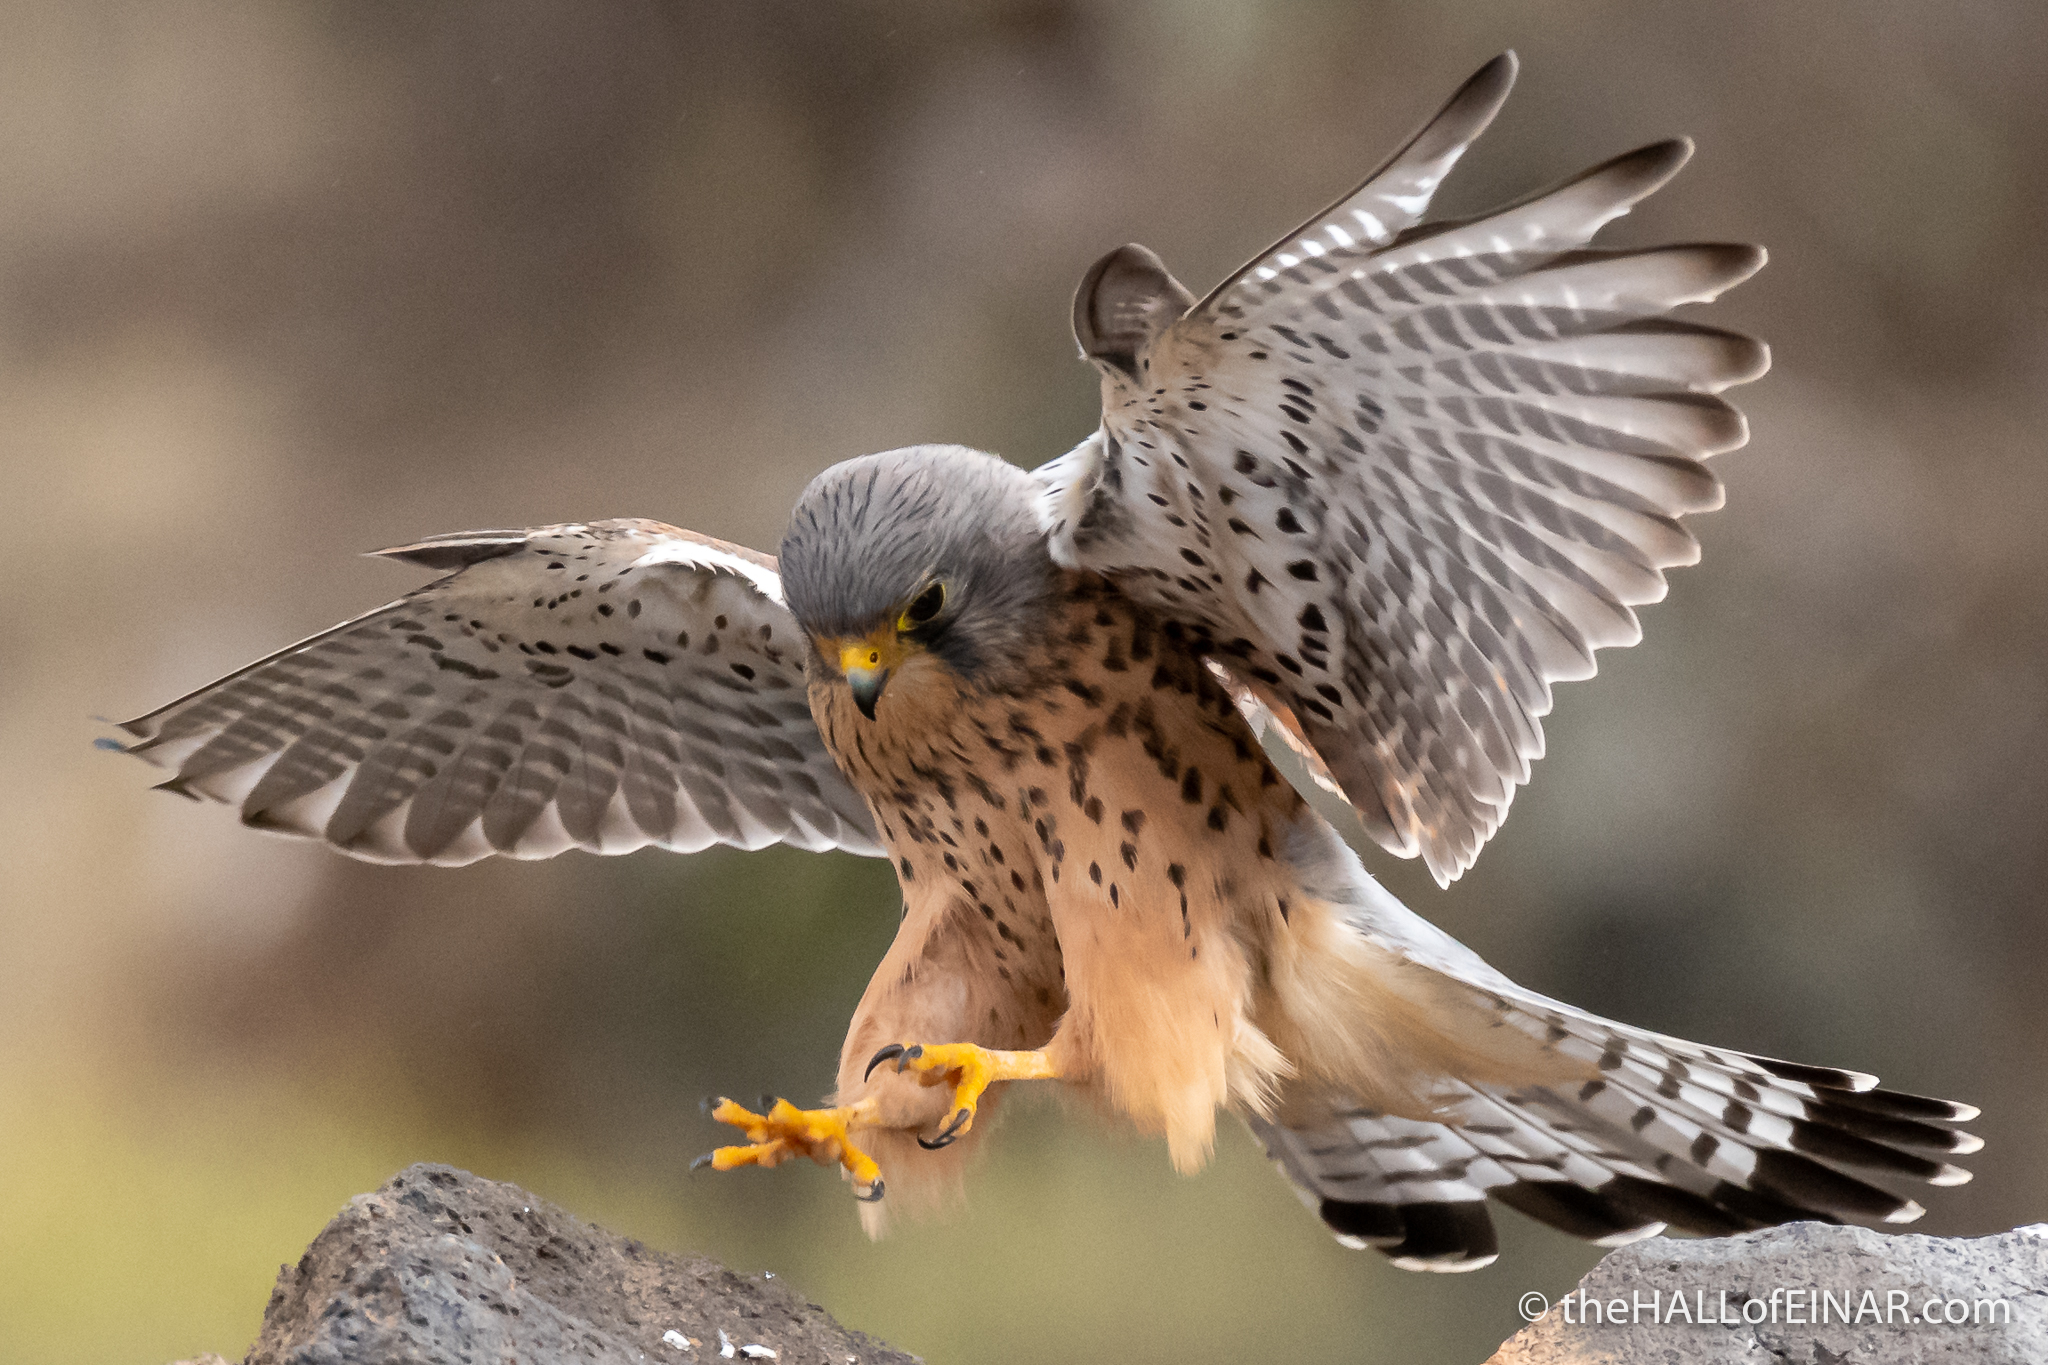 Canary Islands Kestrel - Gran Canaria - The Hall of Einar - photograph (c) David Bailey (not the)